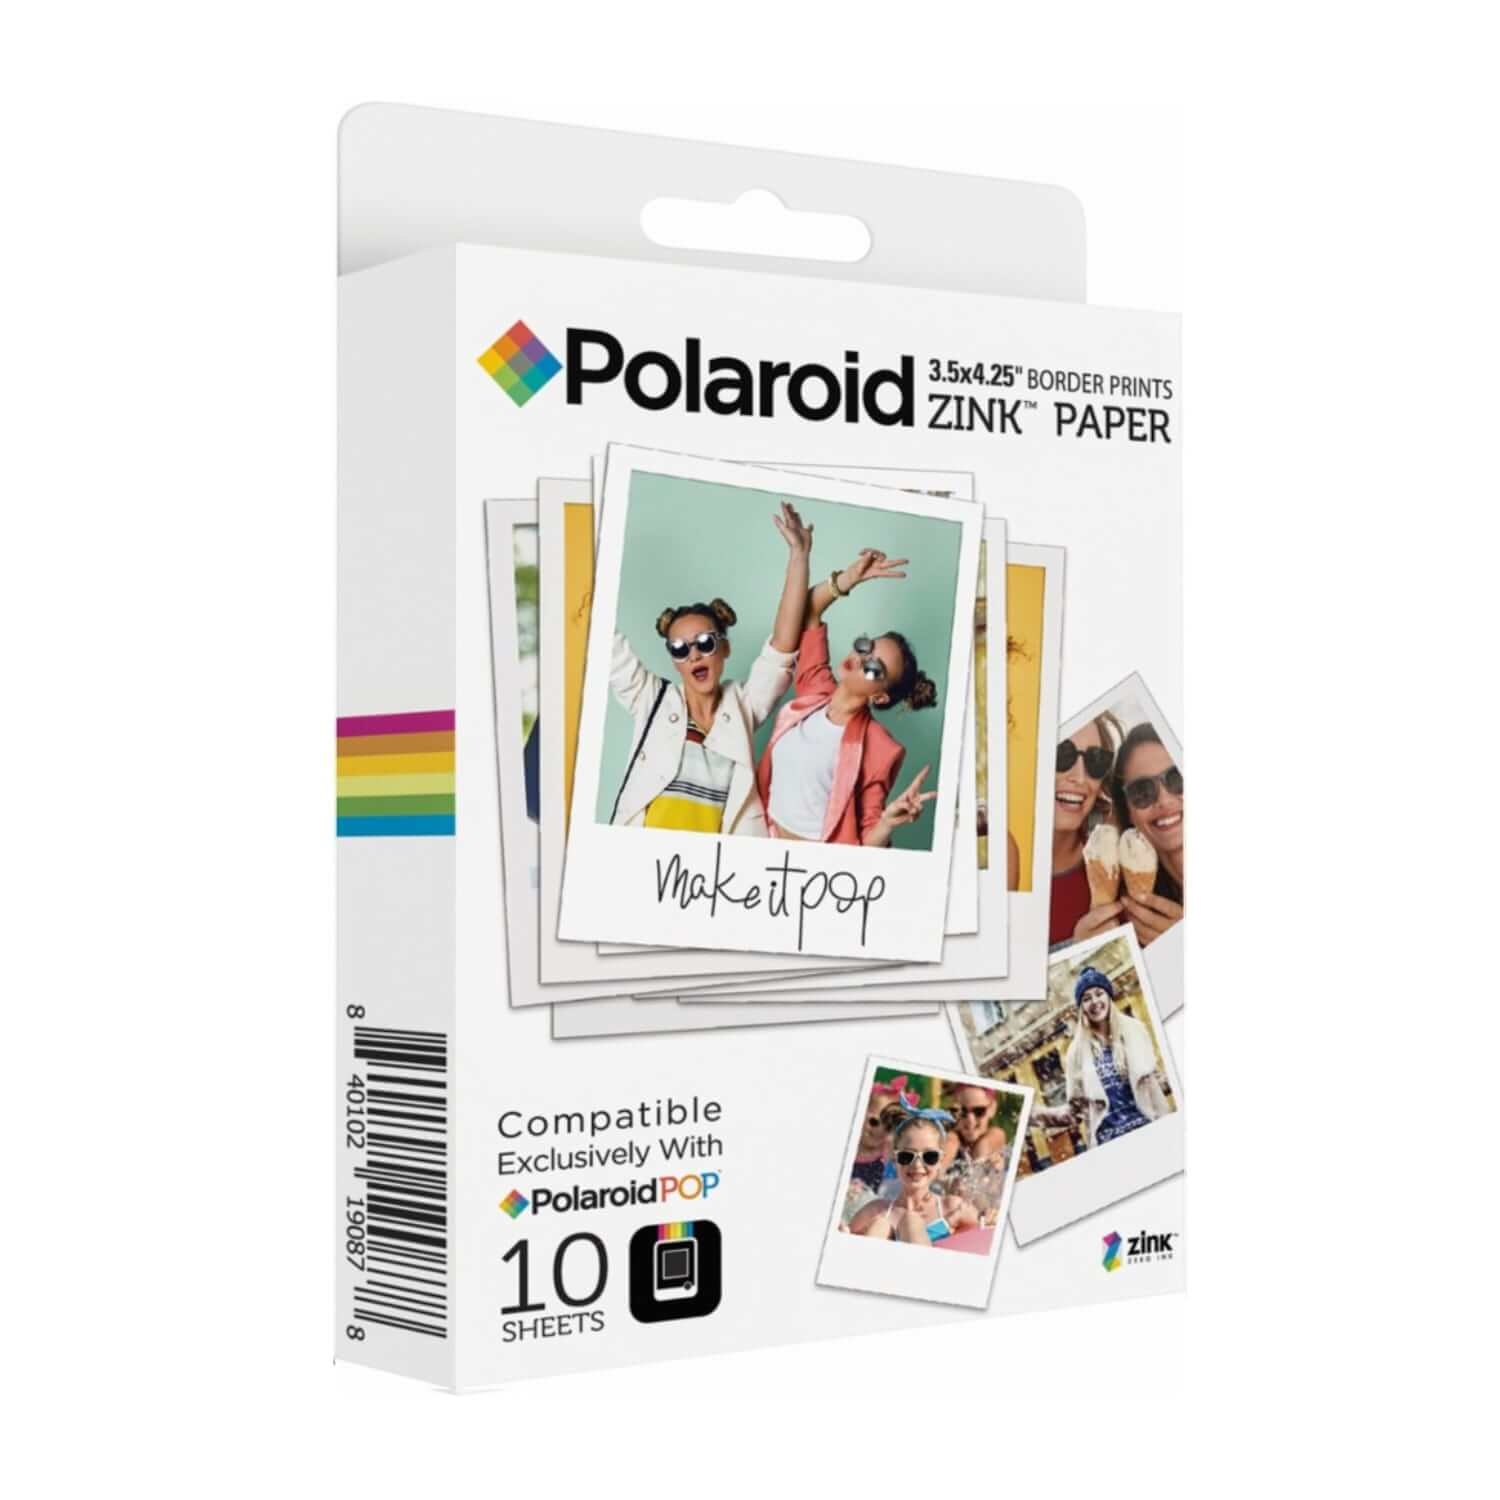 Polaroid Zink Media - фотохартия Zink 3x4 инача (10 пакета)